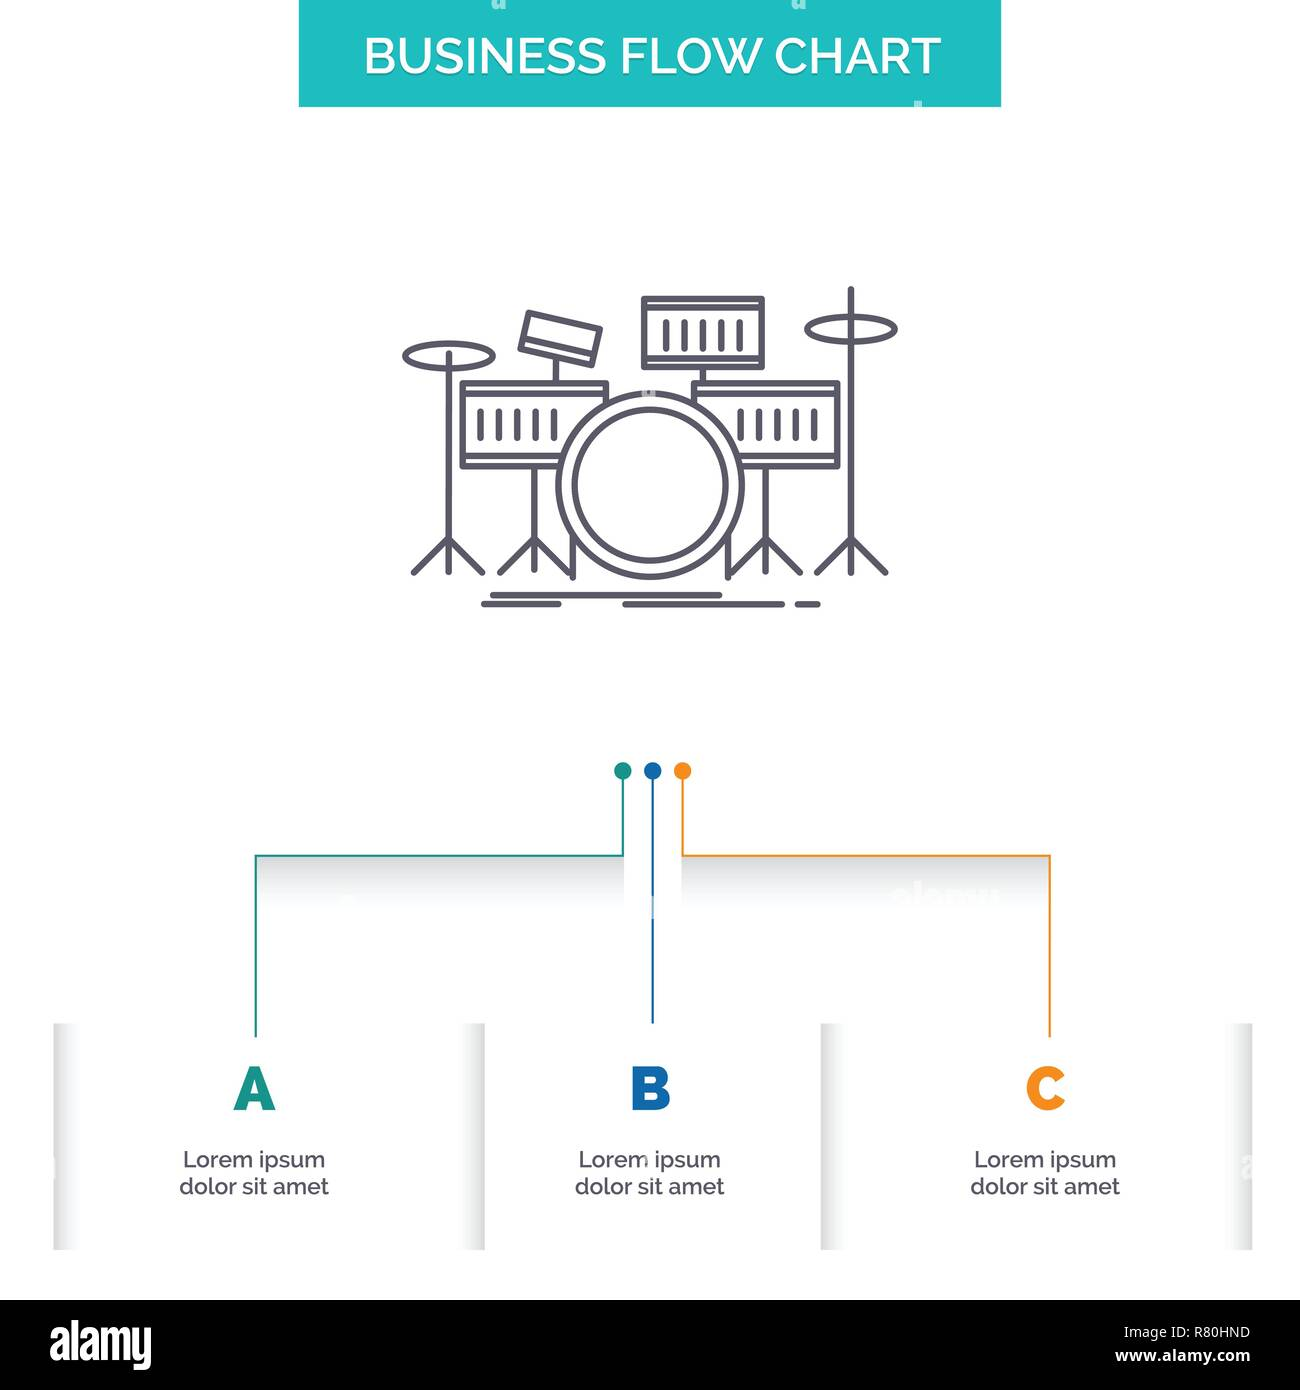 hight resolution of drum drums instrument kit musical business flow chart design with 3 steps